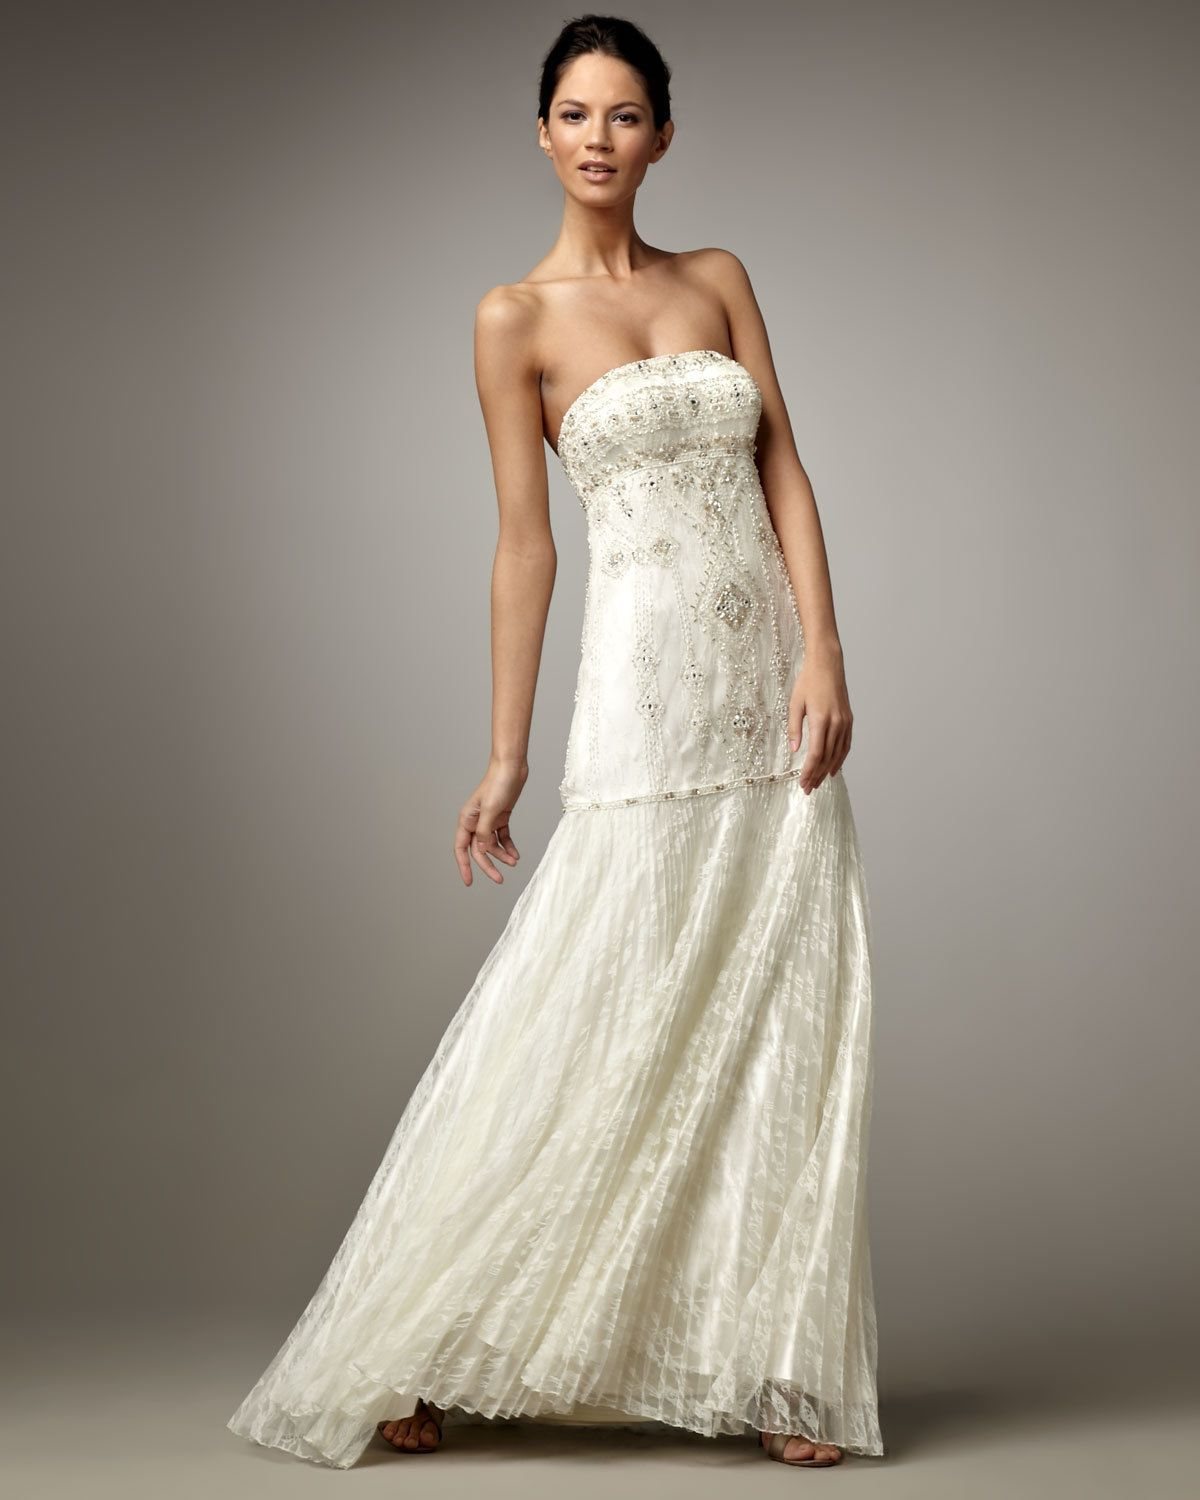 Drop Waist Diamond White Strapless Wedding Dress With: HOT Sue Wong Embellished Beaded Strapless Lace Pleated